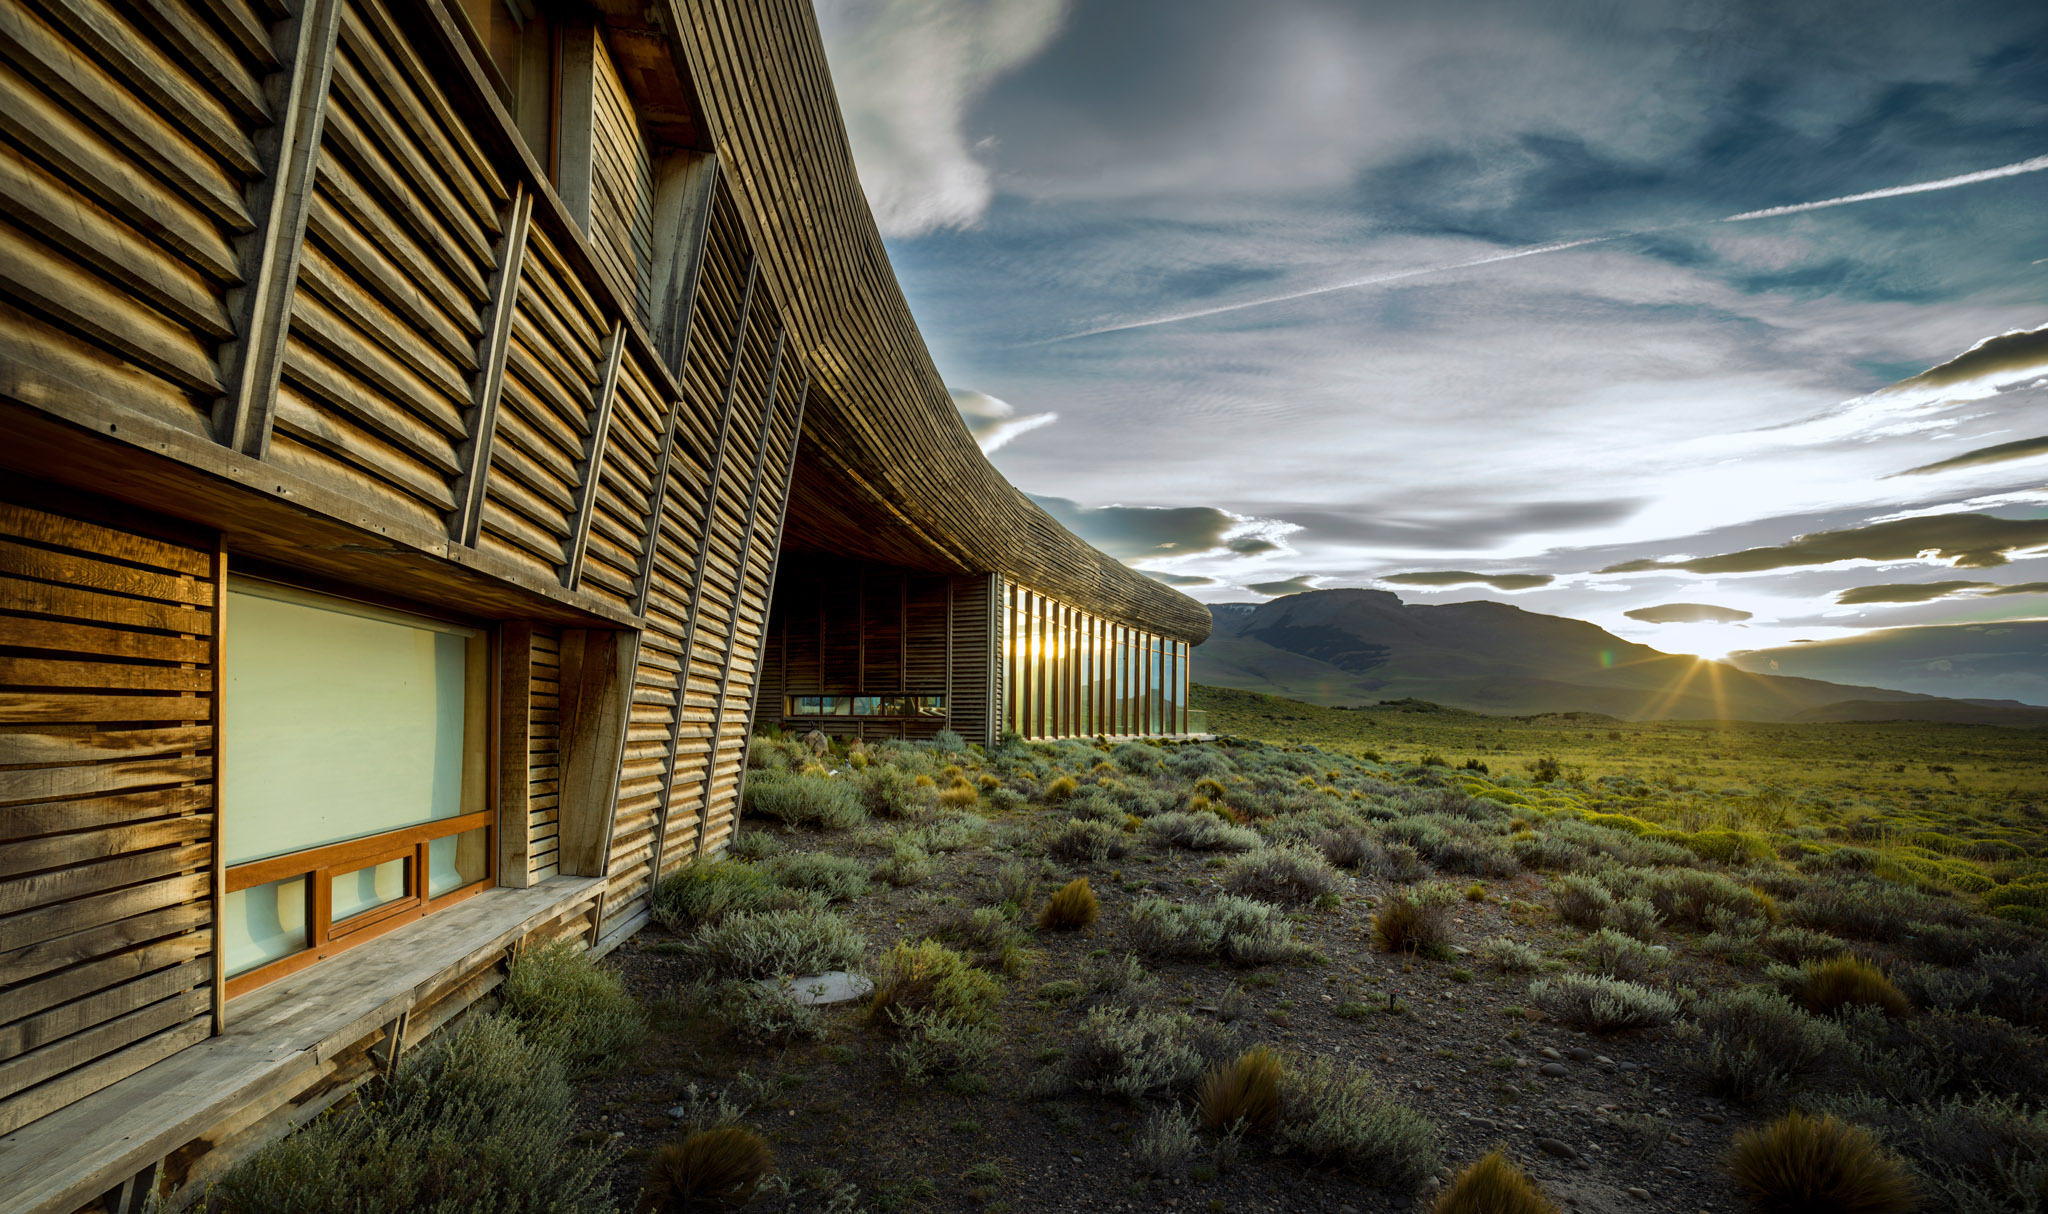 We loved the unique architecture at Tierra Patagonia Hotel. Shot on Hasselblad H6D-100c w/ 24mm.